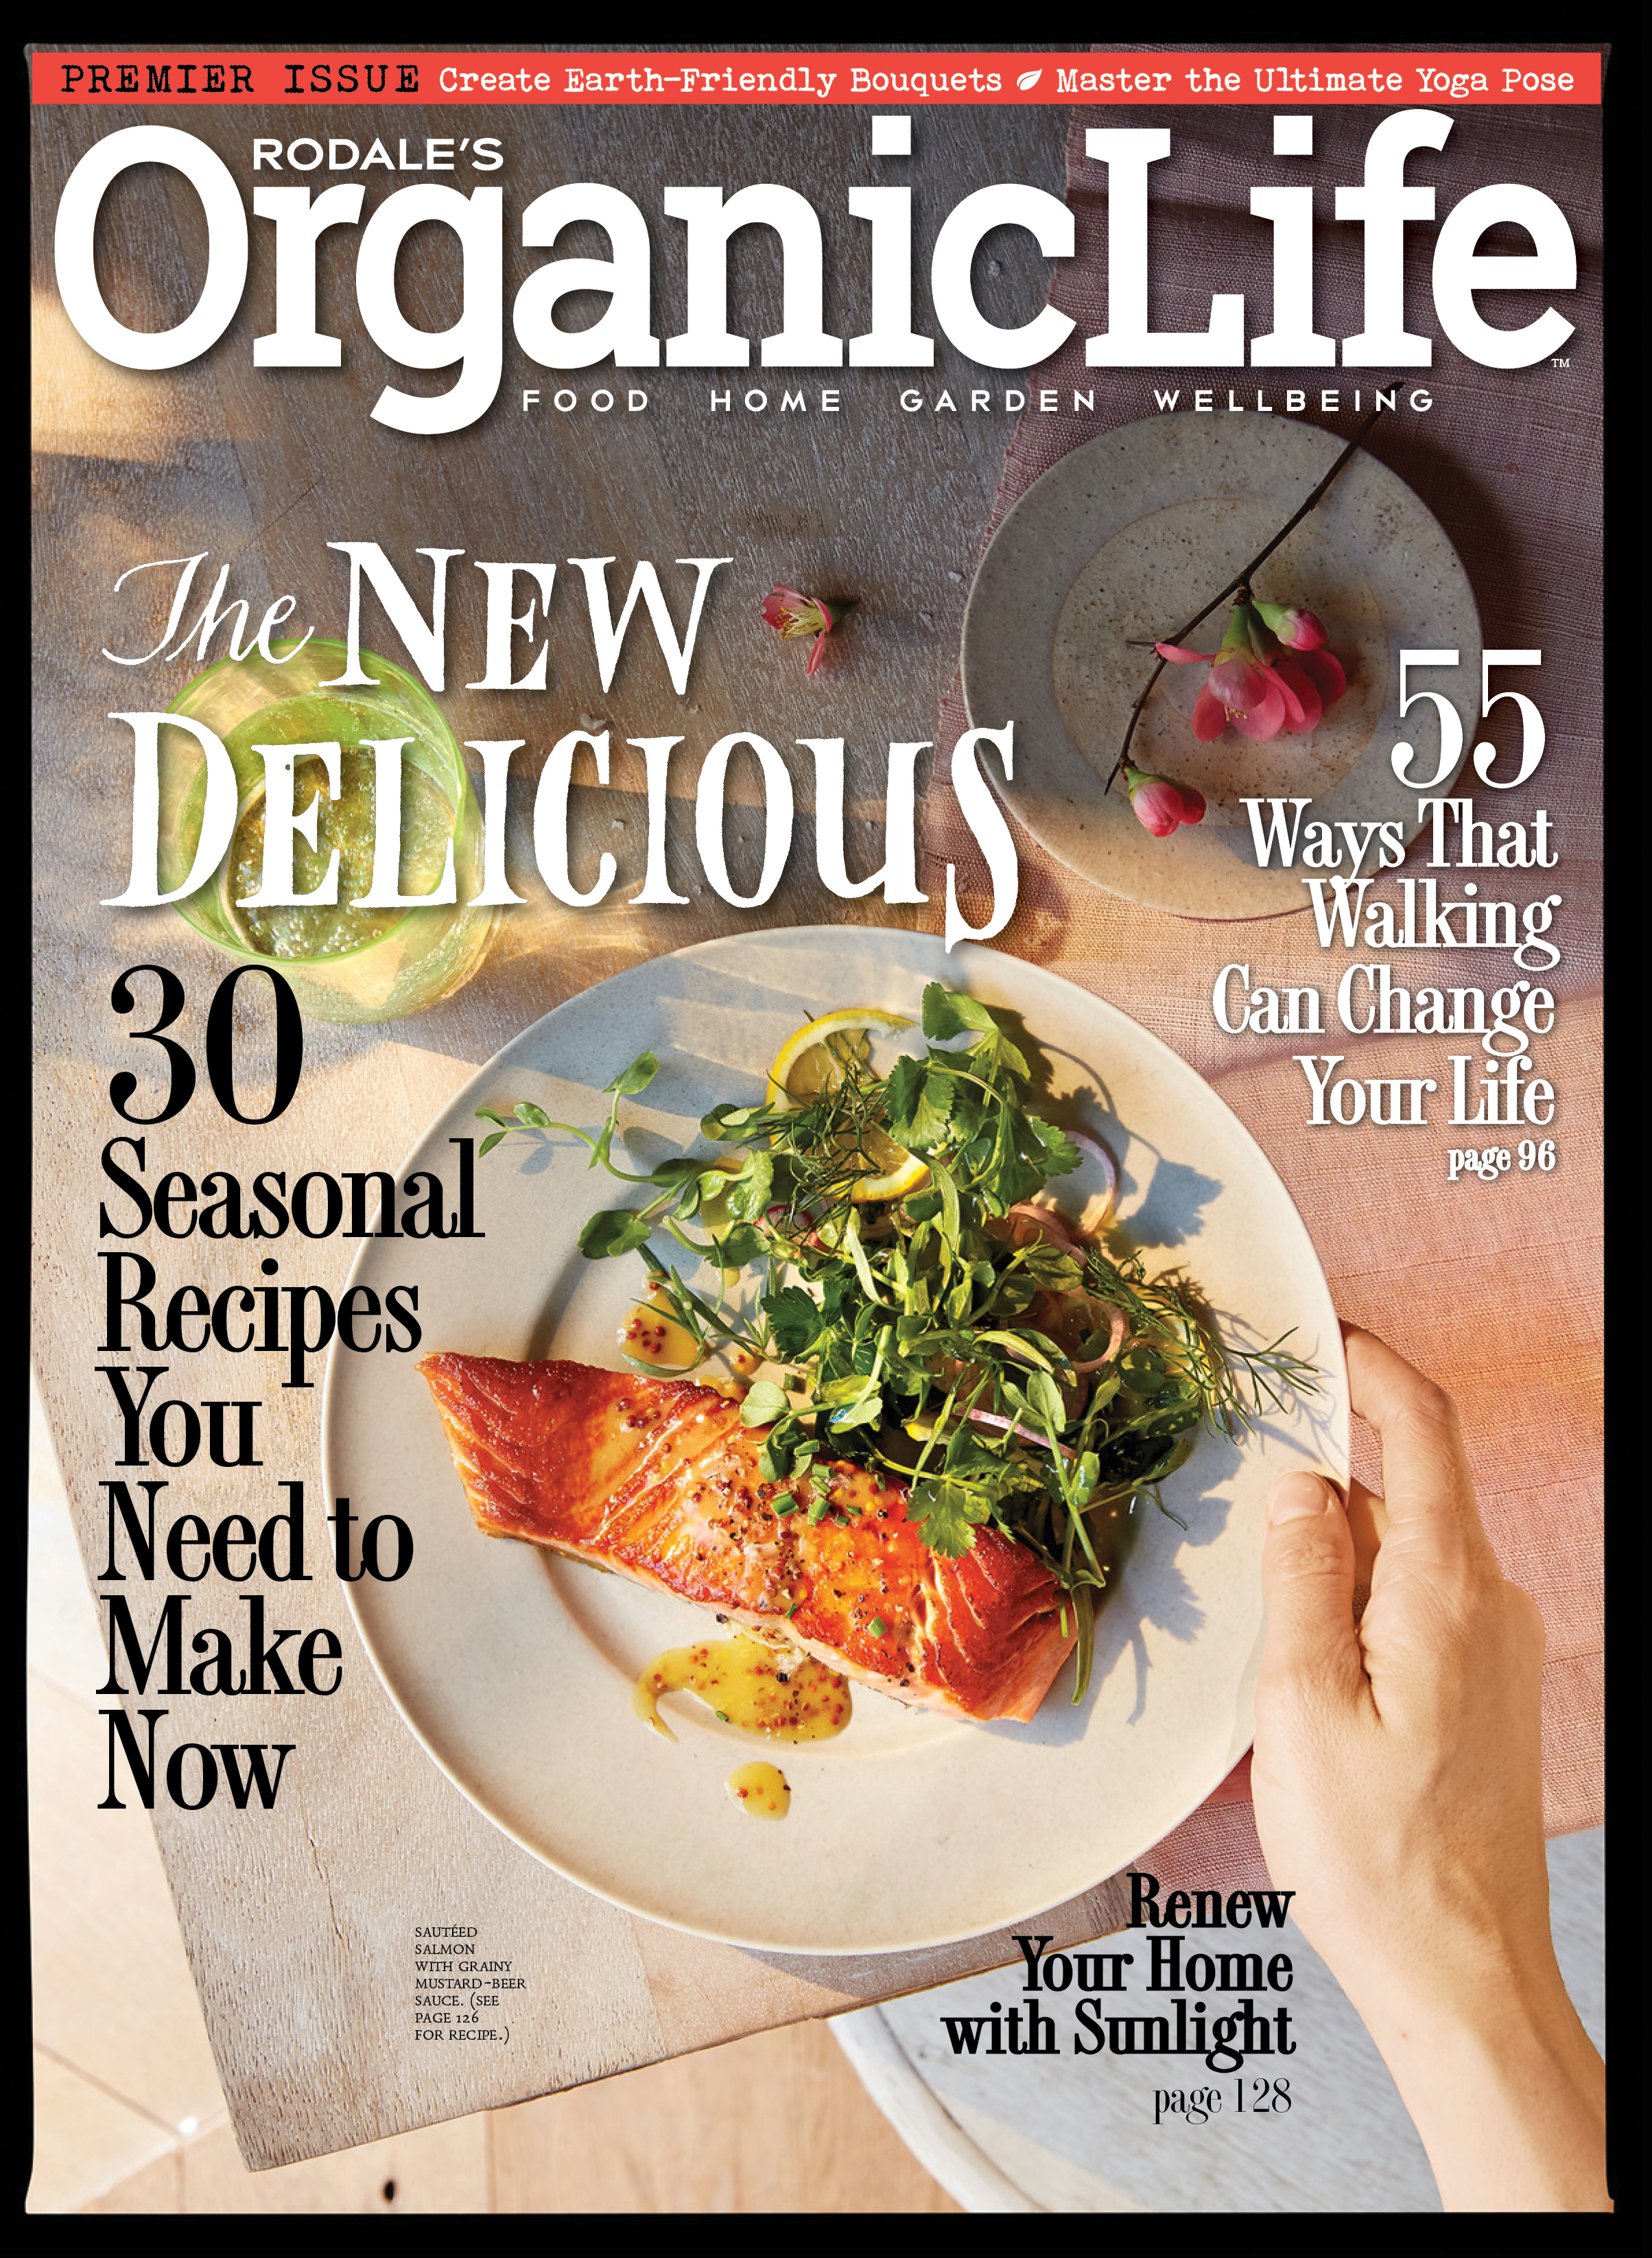 Rodales organic life the story of a perfect magazine launch from rodales organic life forumfinder Image collections